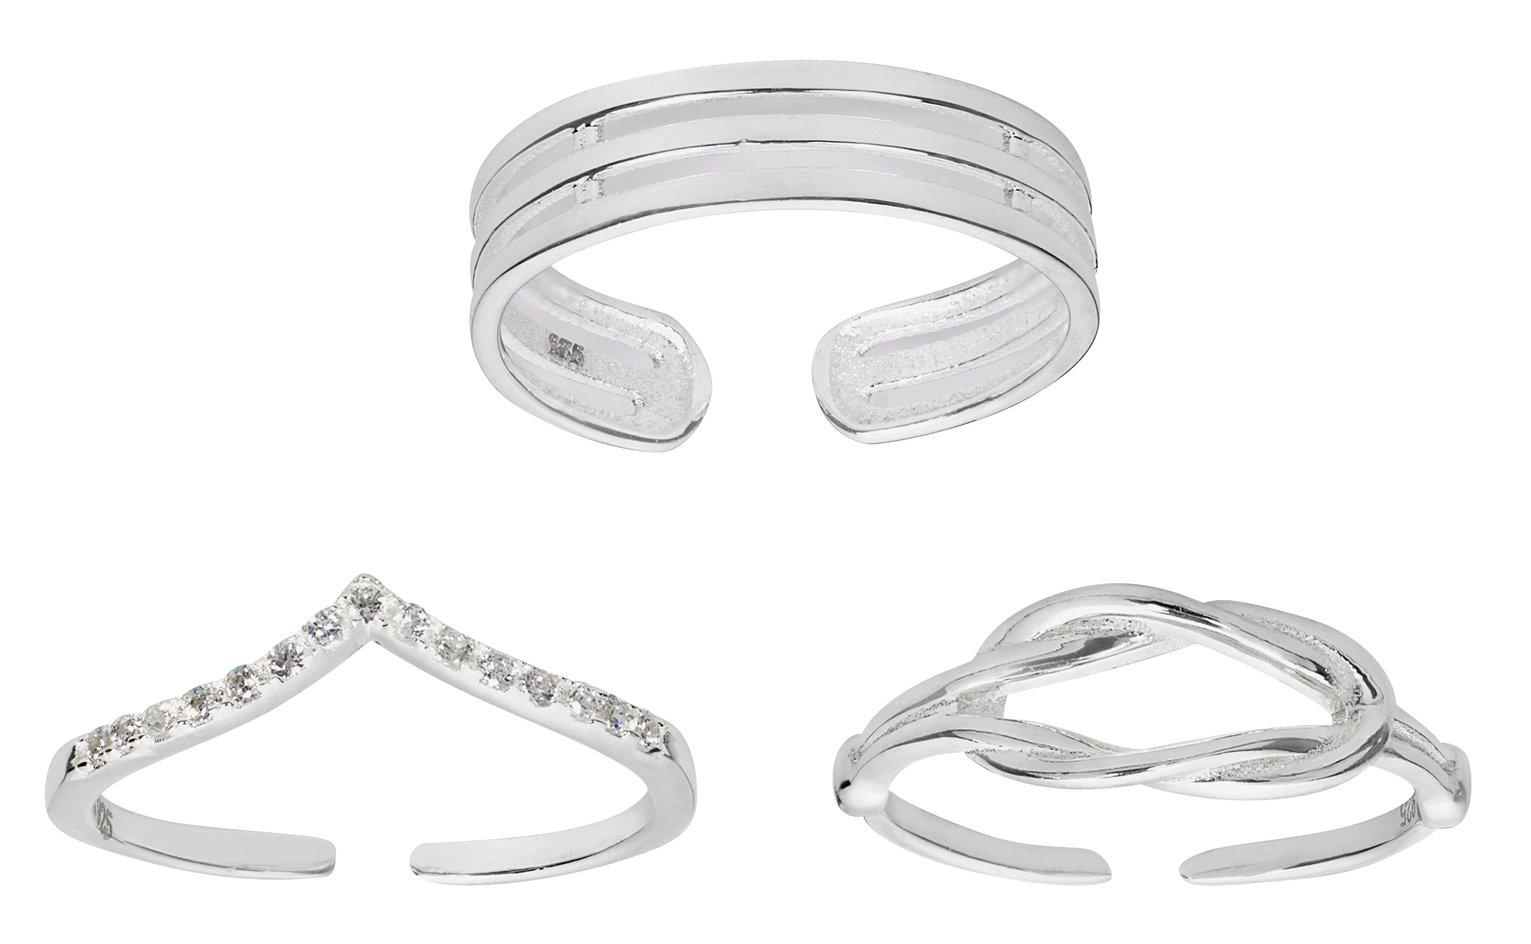 State of Mine Sterling Silver Toe Rings - Set of 3